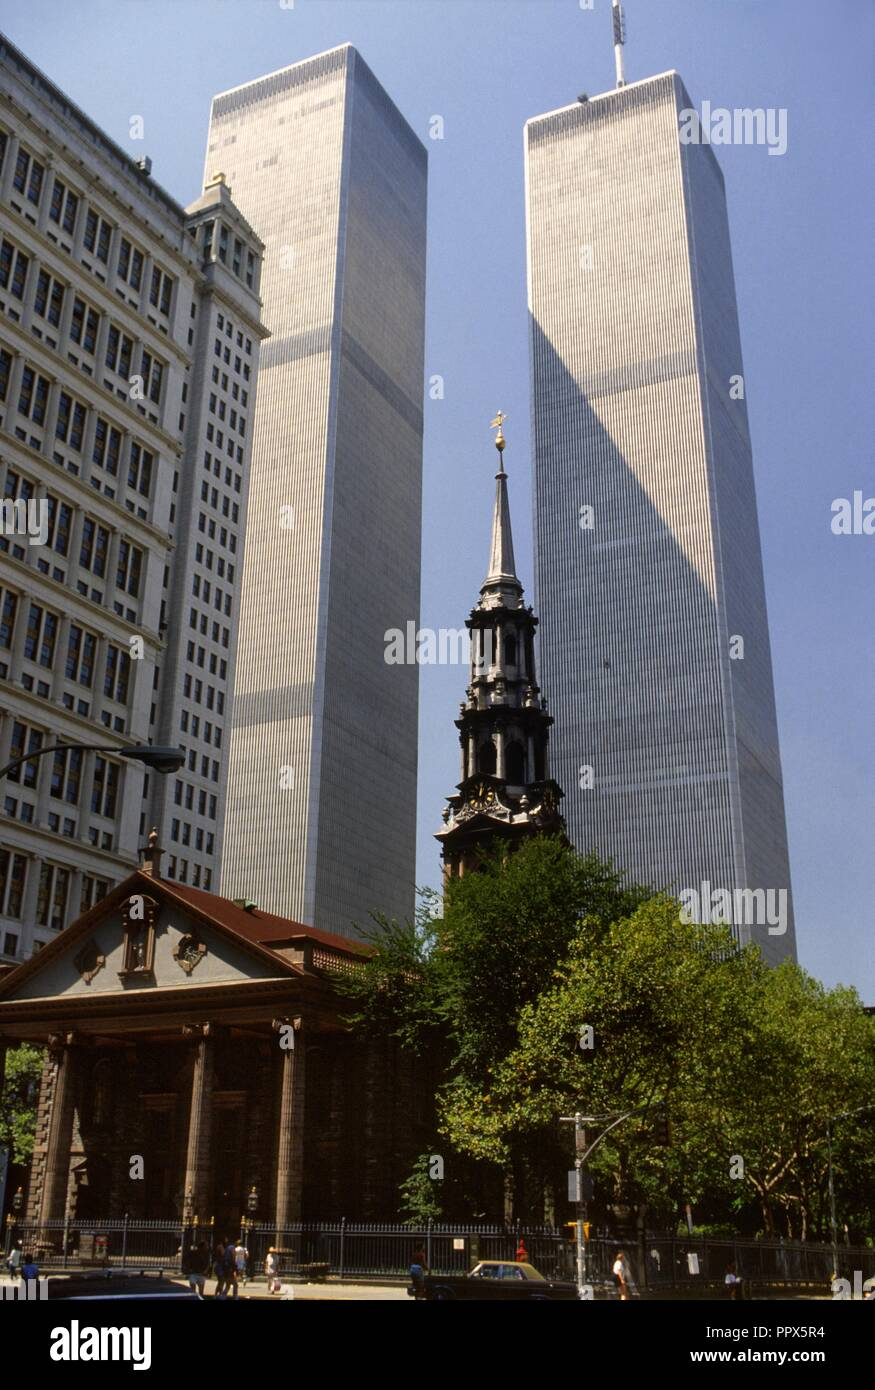 USA, New York city, Manhattan, the World Trade Center Twin Towers and St. Paul's Chapel in 1985 - Stock Image